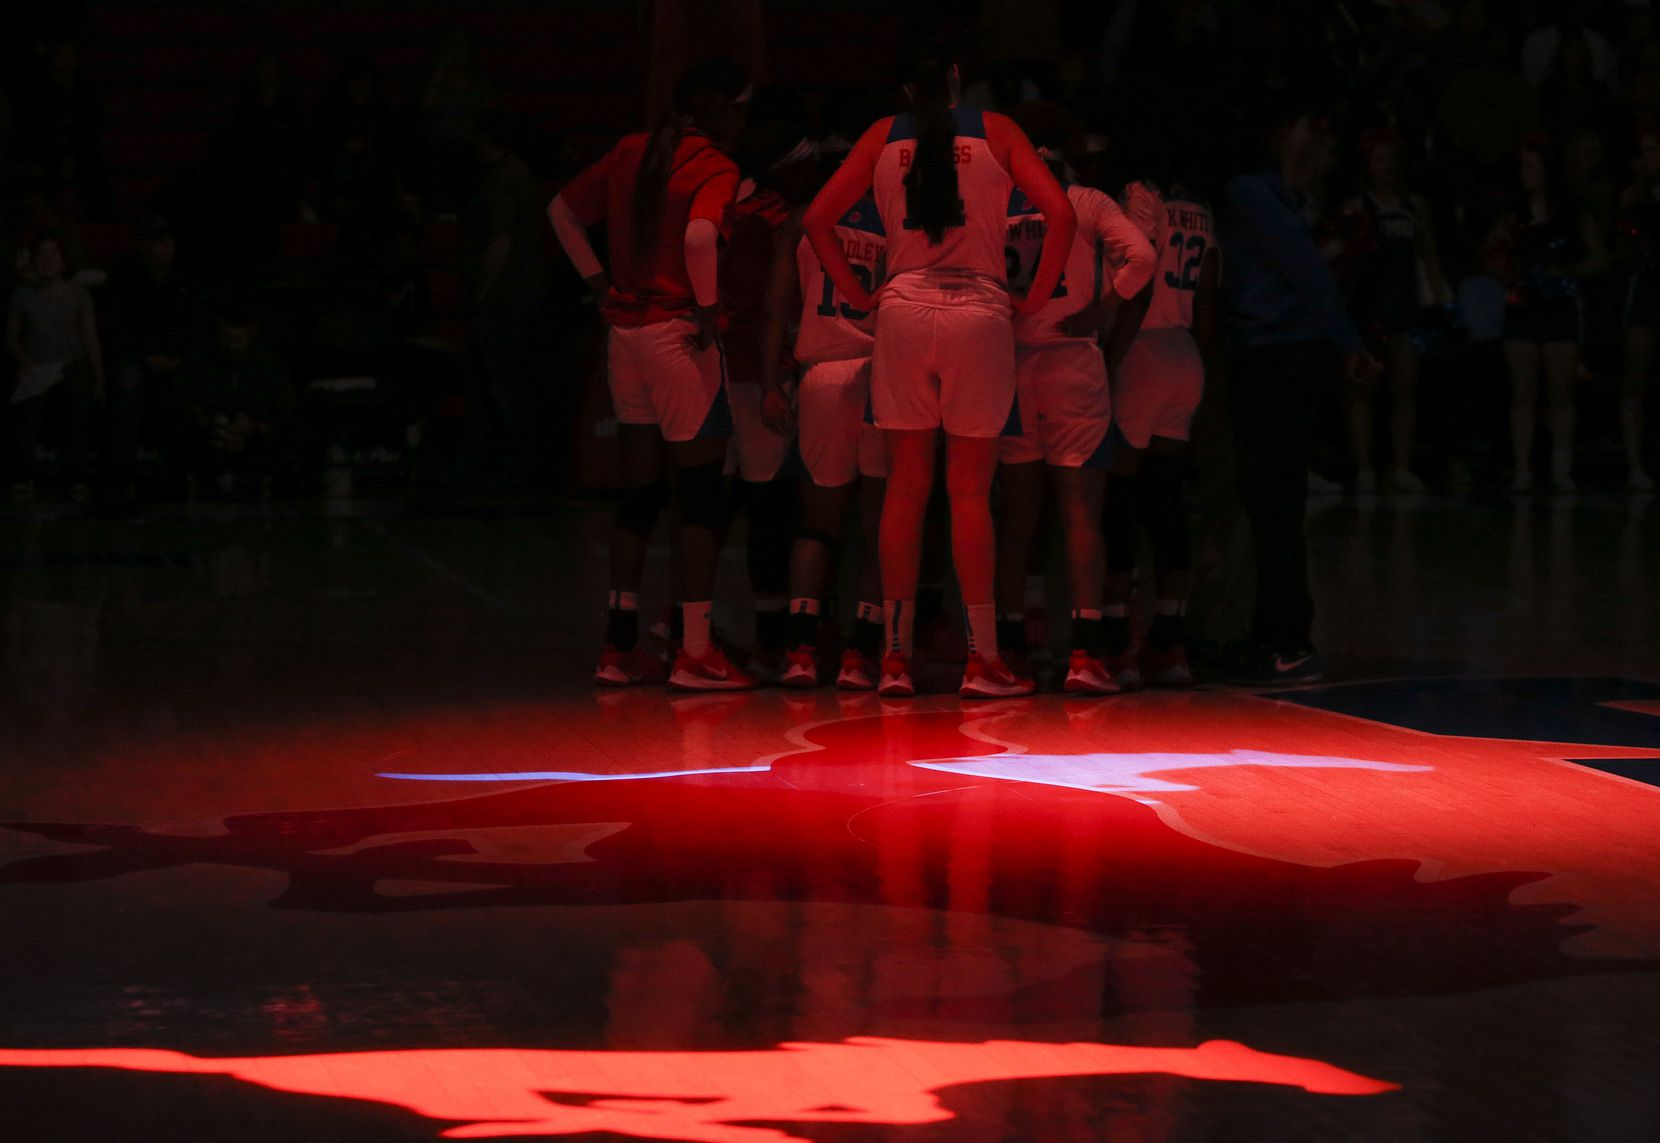 The Southern Methodist Mustangs huddle prior to a NCAA women's basketball matchup between the Southern Methodist Mustangs and the UConn Huskies on Sunday, Jan. 5, 2020 at Moody Coliseum in University Park, Texas. (Ryan Michalesko/The Dallas Morning News)